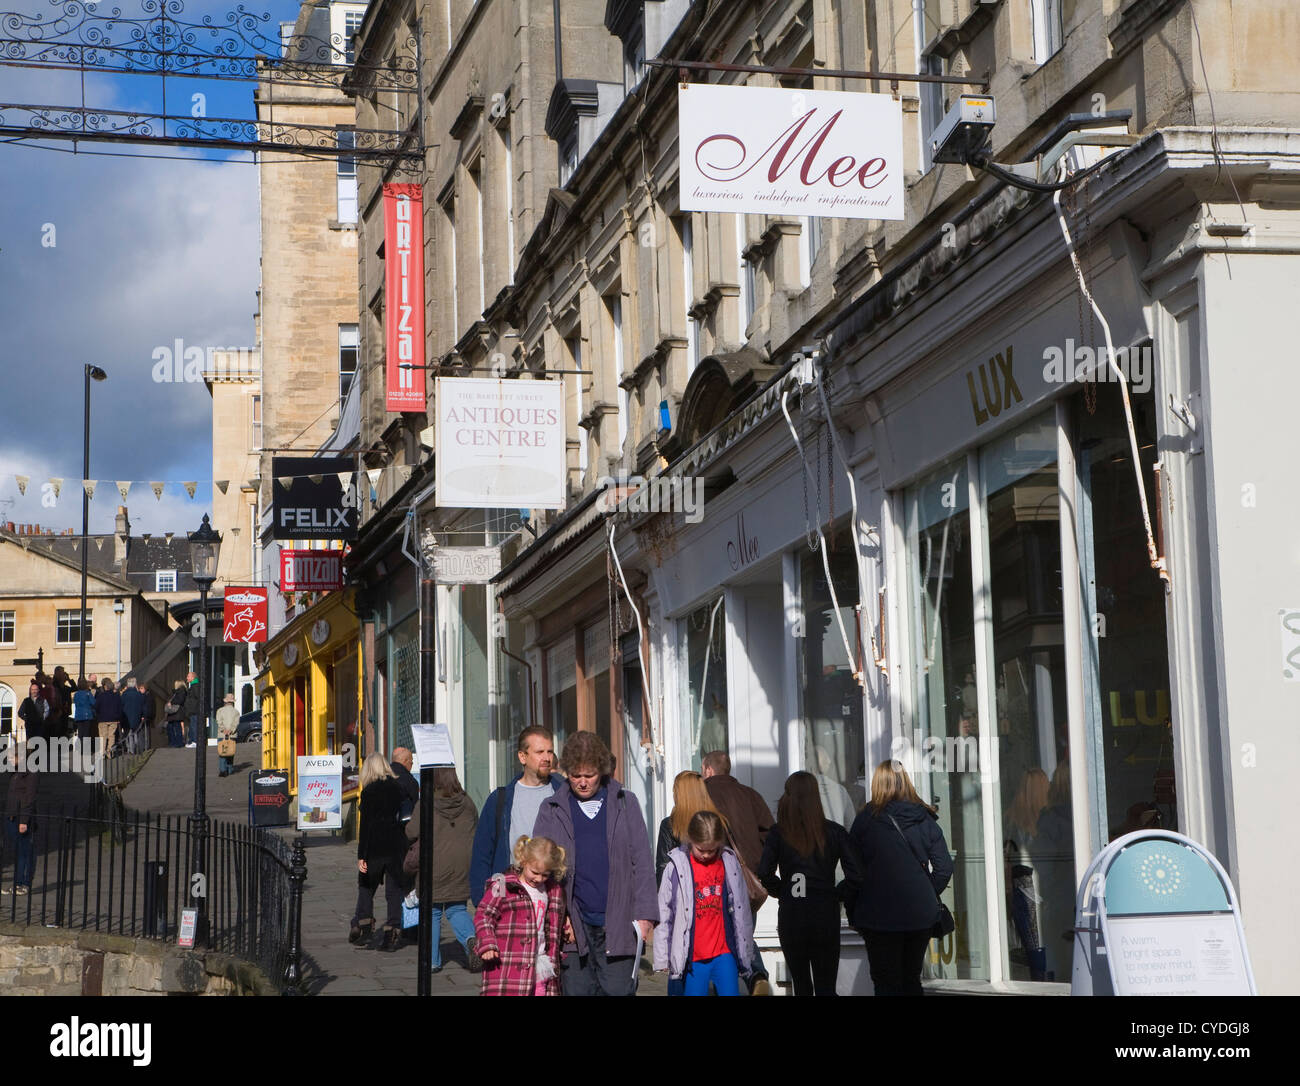 Shop signs Bartlett Street, Bath, Somerset, England - Stock Image